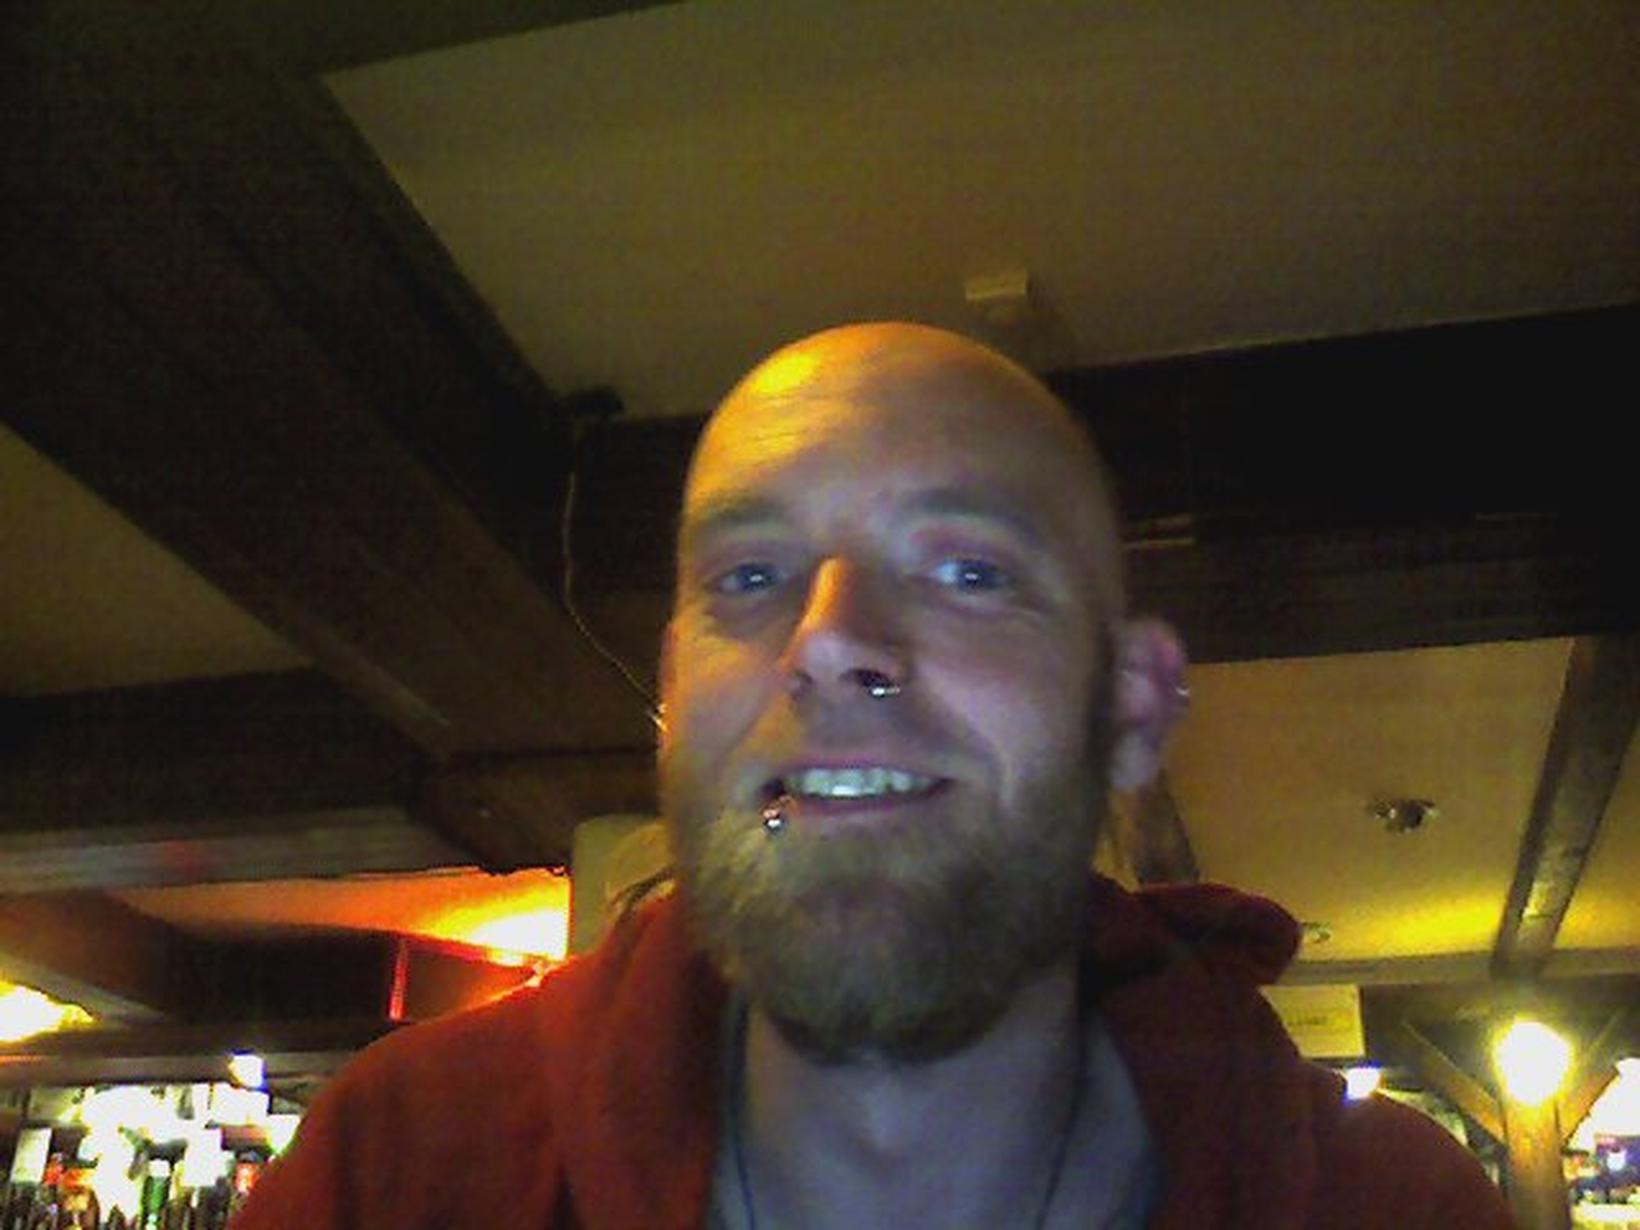 Dave from Teignmouth, United Kingdom